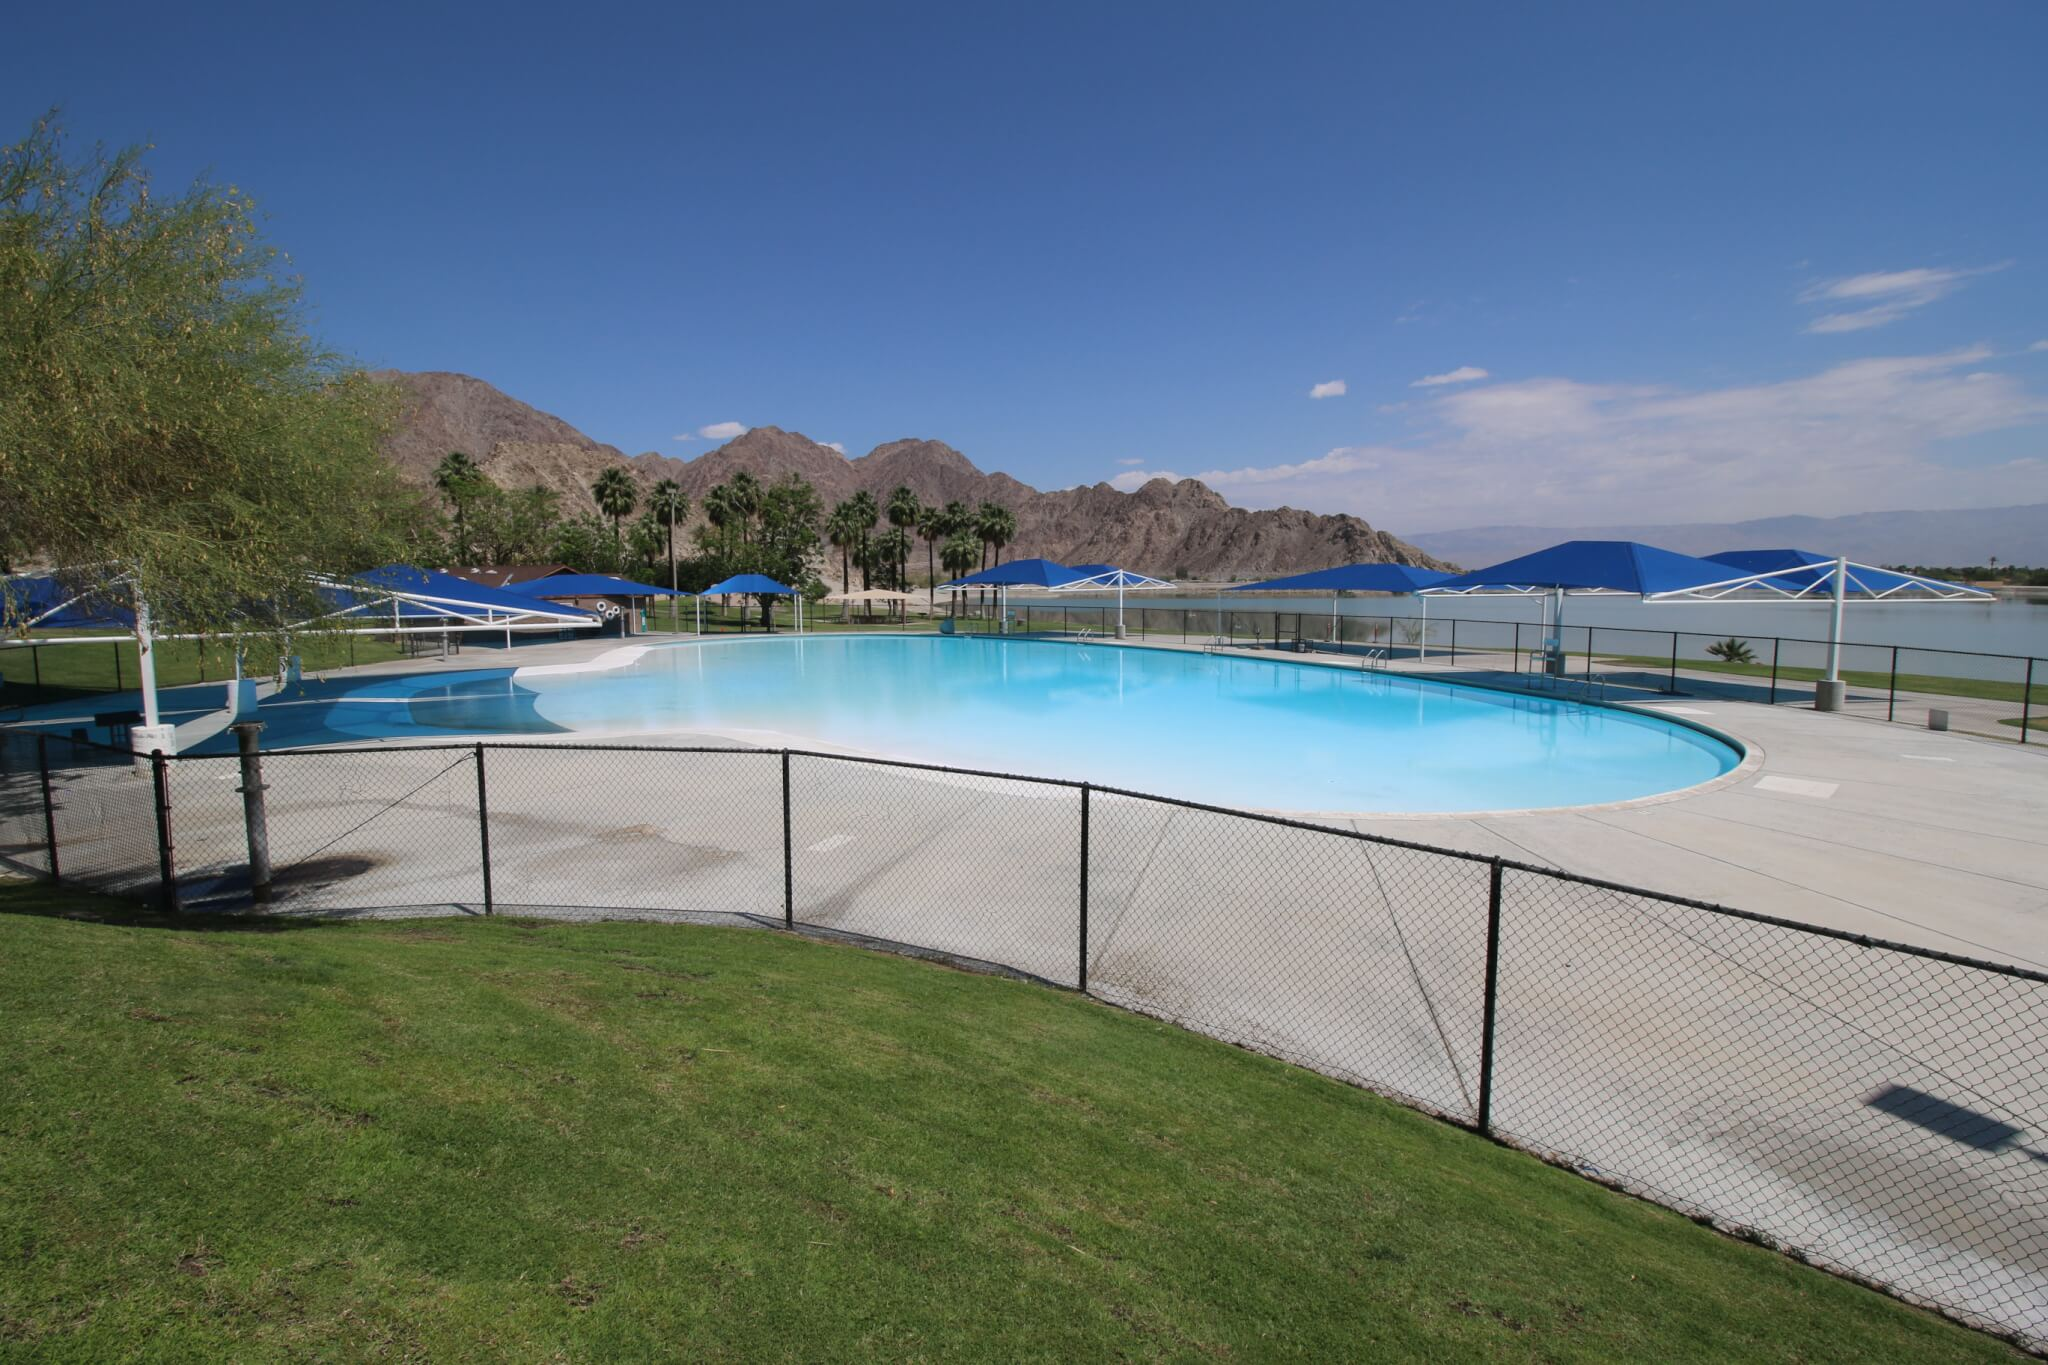 Riverside County Parks Campgrounds_Lake Cahuilla Swimming Pool